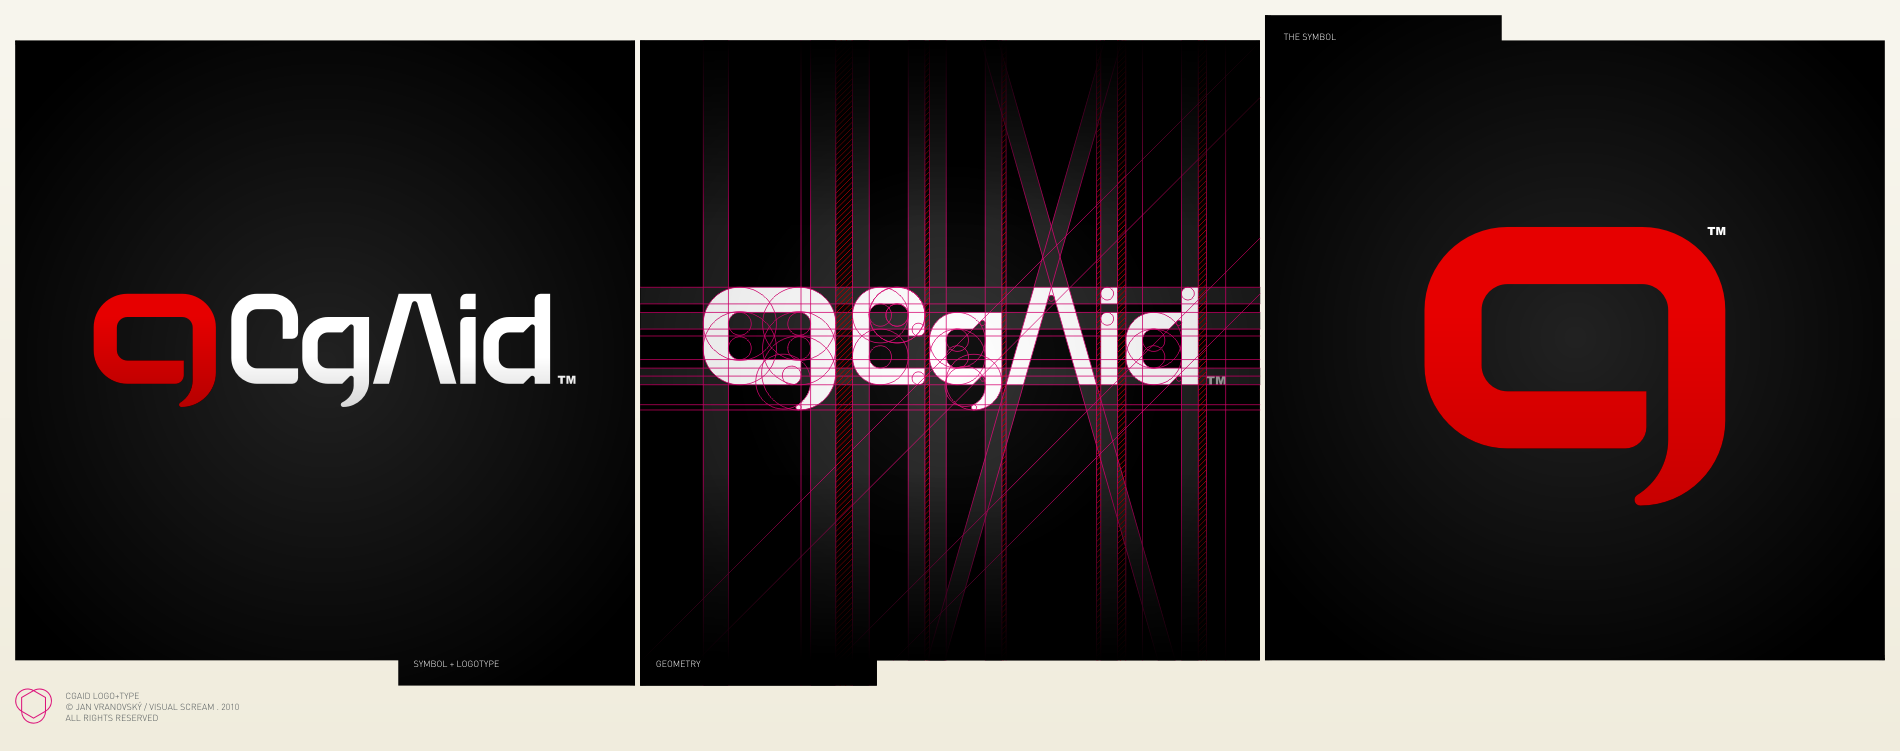 cgaid logo+type by Raven30412